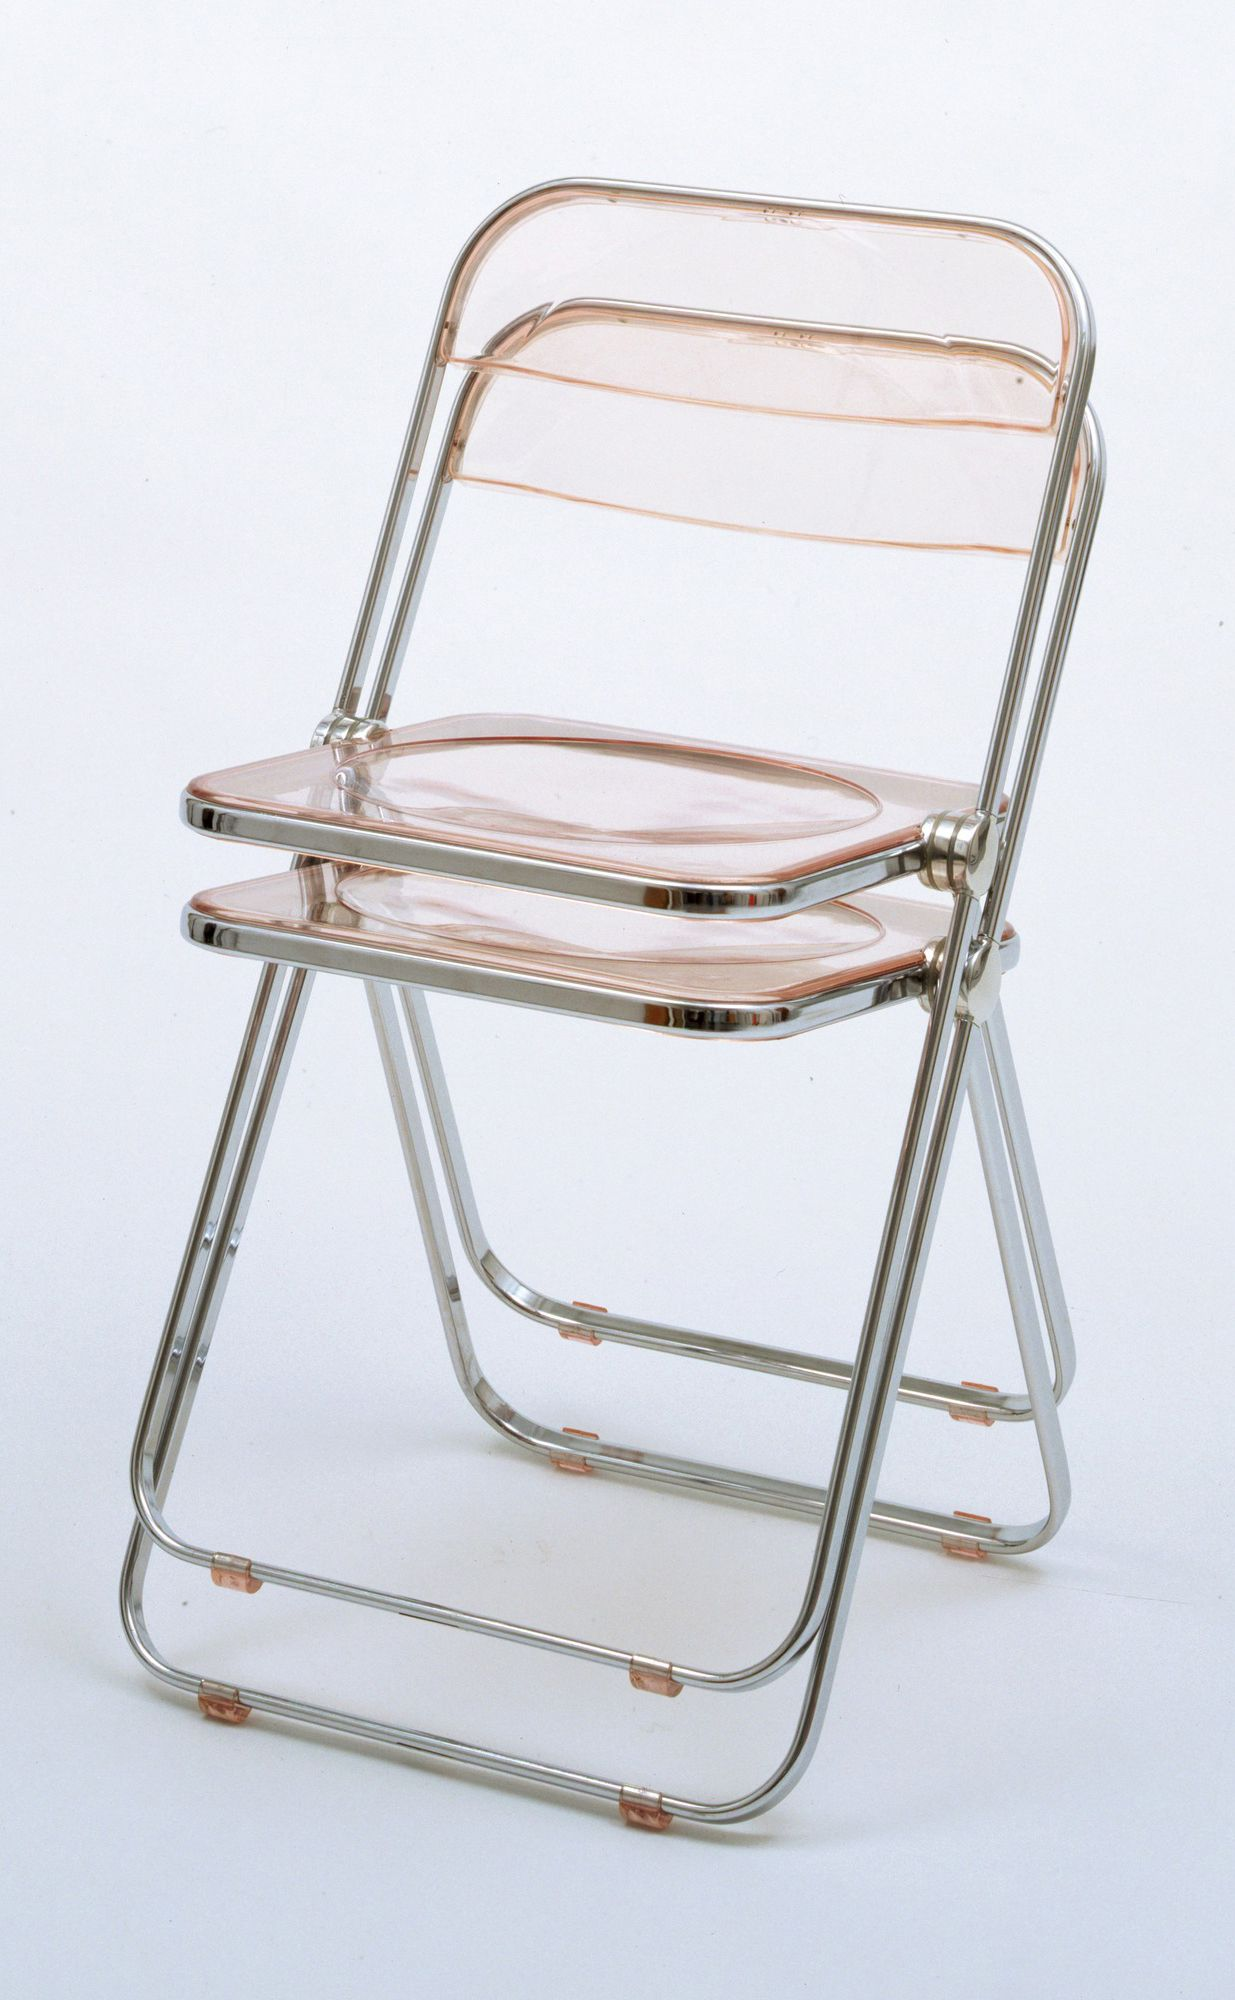 Giancarlo Piretti  Plia Folding and Stacking Chair  1967   MoMA is part of Foldable chairs - 4  (46 3 cm)  Gift of the manufacturer  419 1972 12  Architecture and Design